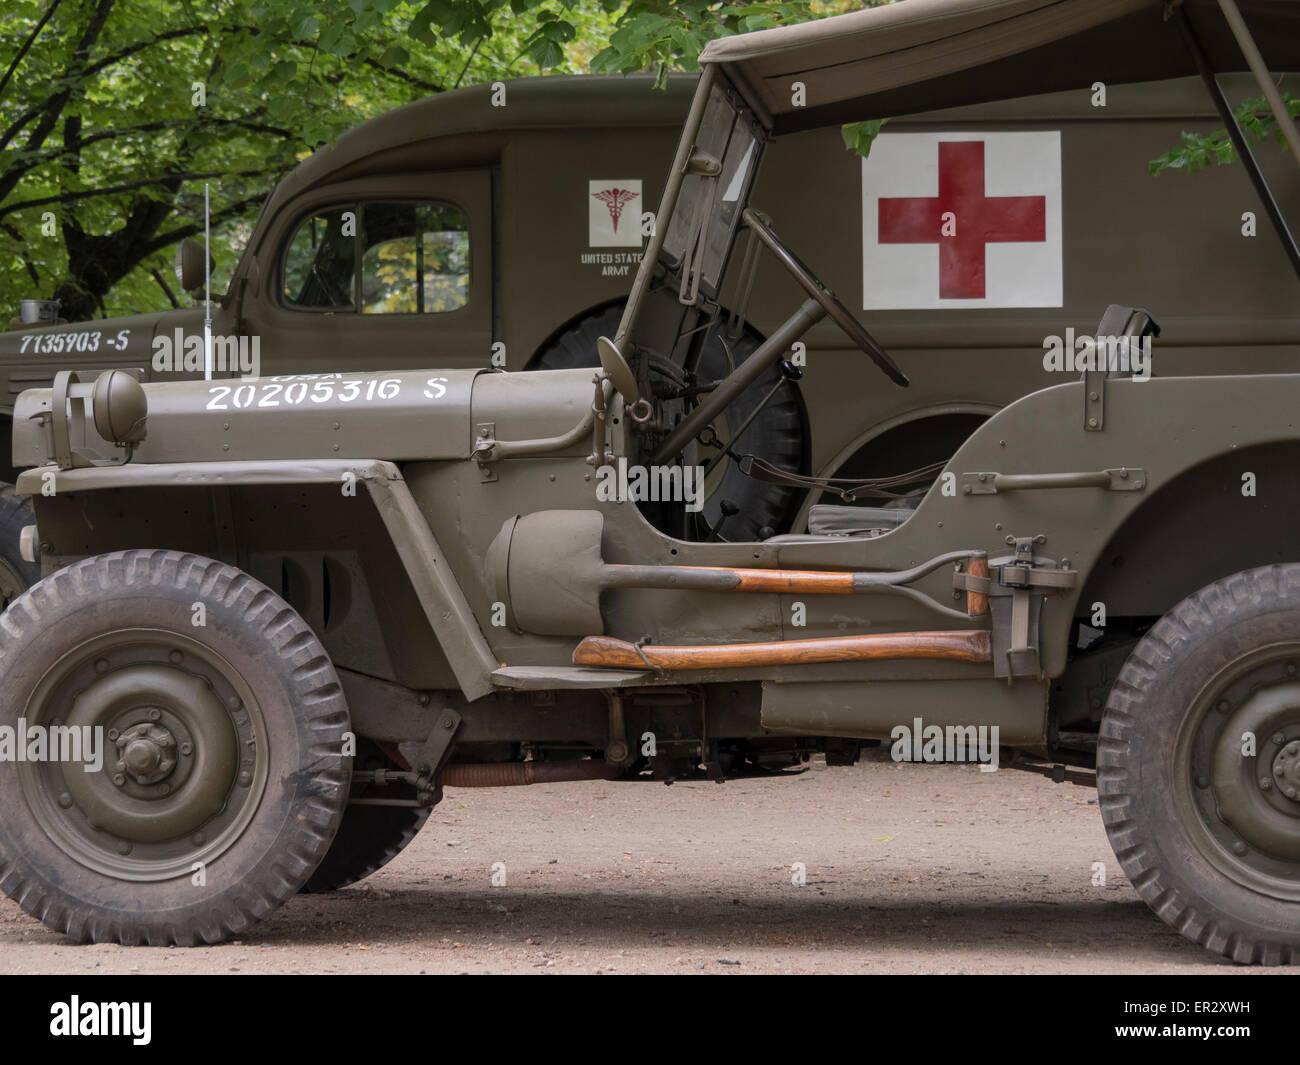 jeep willys avec hache et d 39 une pelle et d 39 une ambulance derri re 2e guerre mondiale banque d. Black Bedroom Furniture Sets. Home Design Ideas